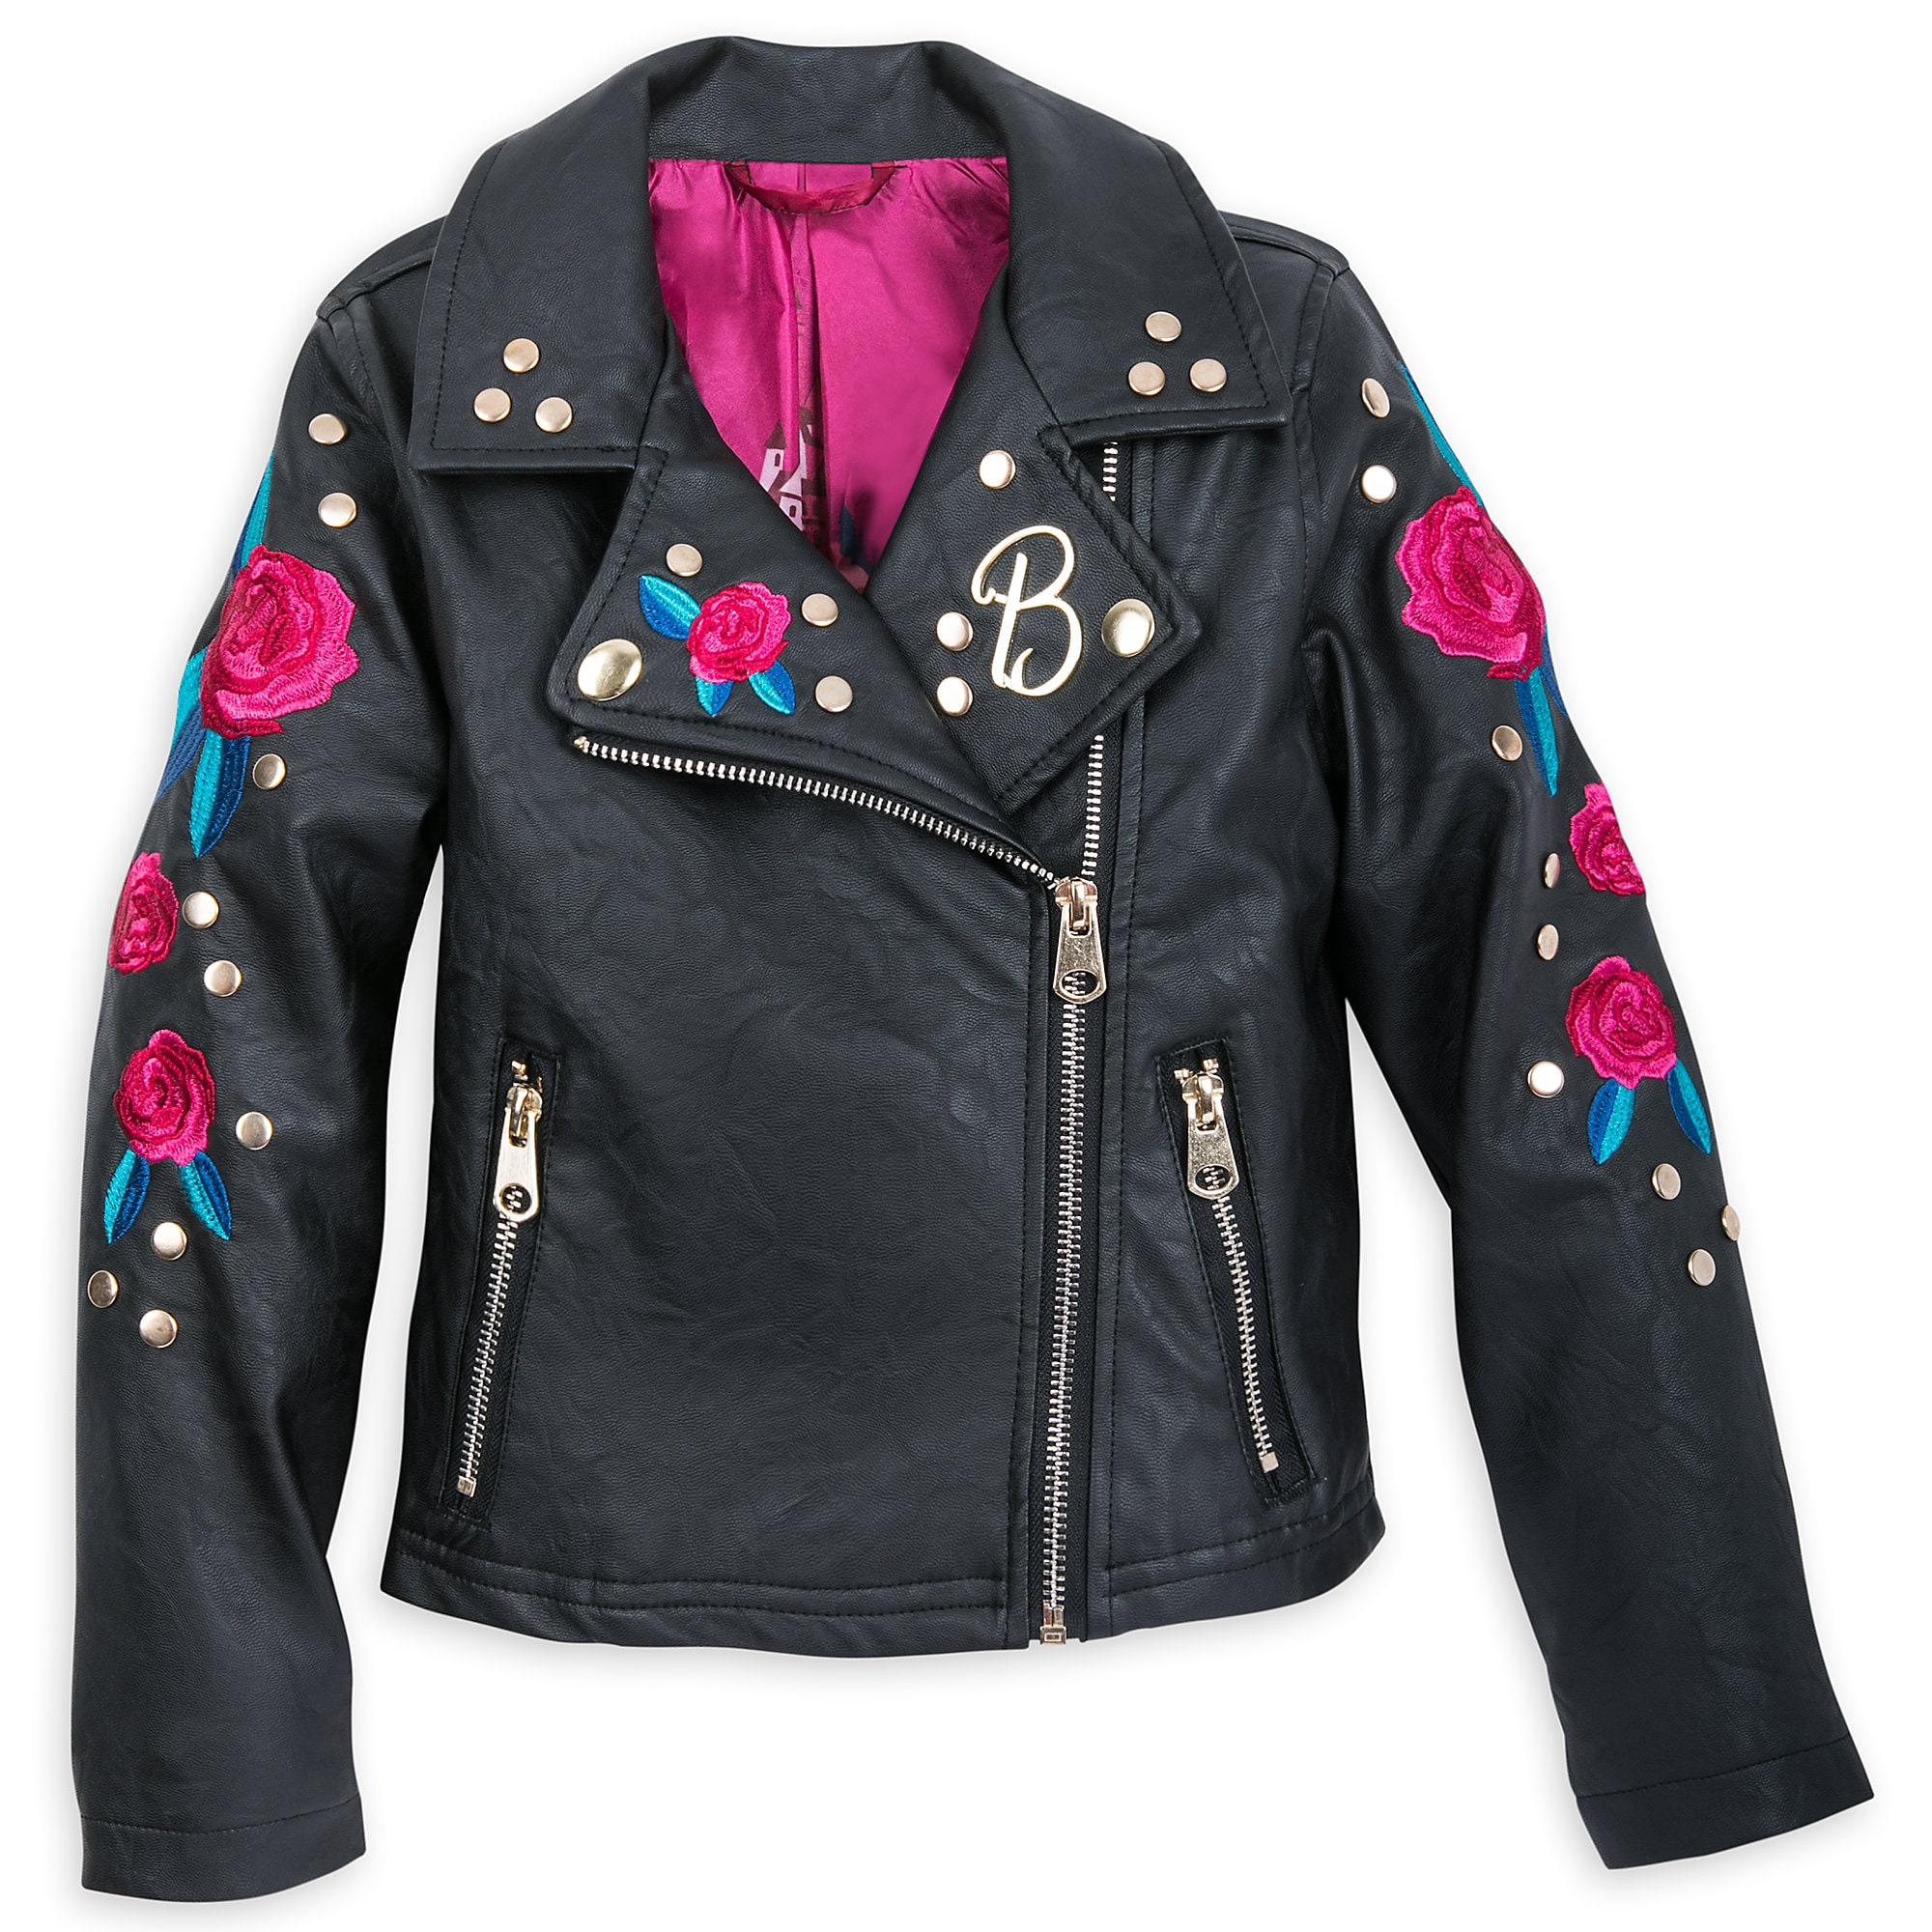 Belle Simulated Leather Jacket for Girls - Beauty and the Beast